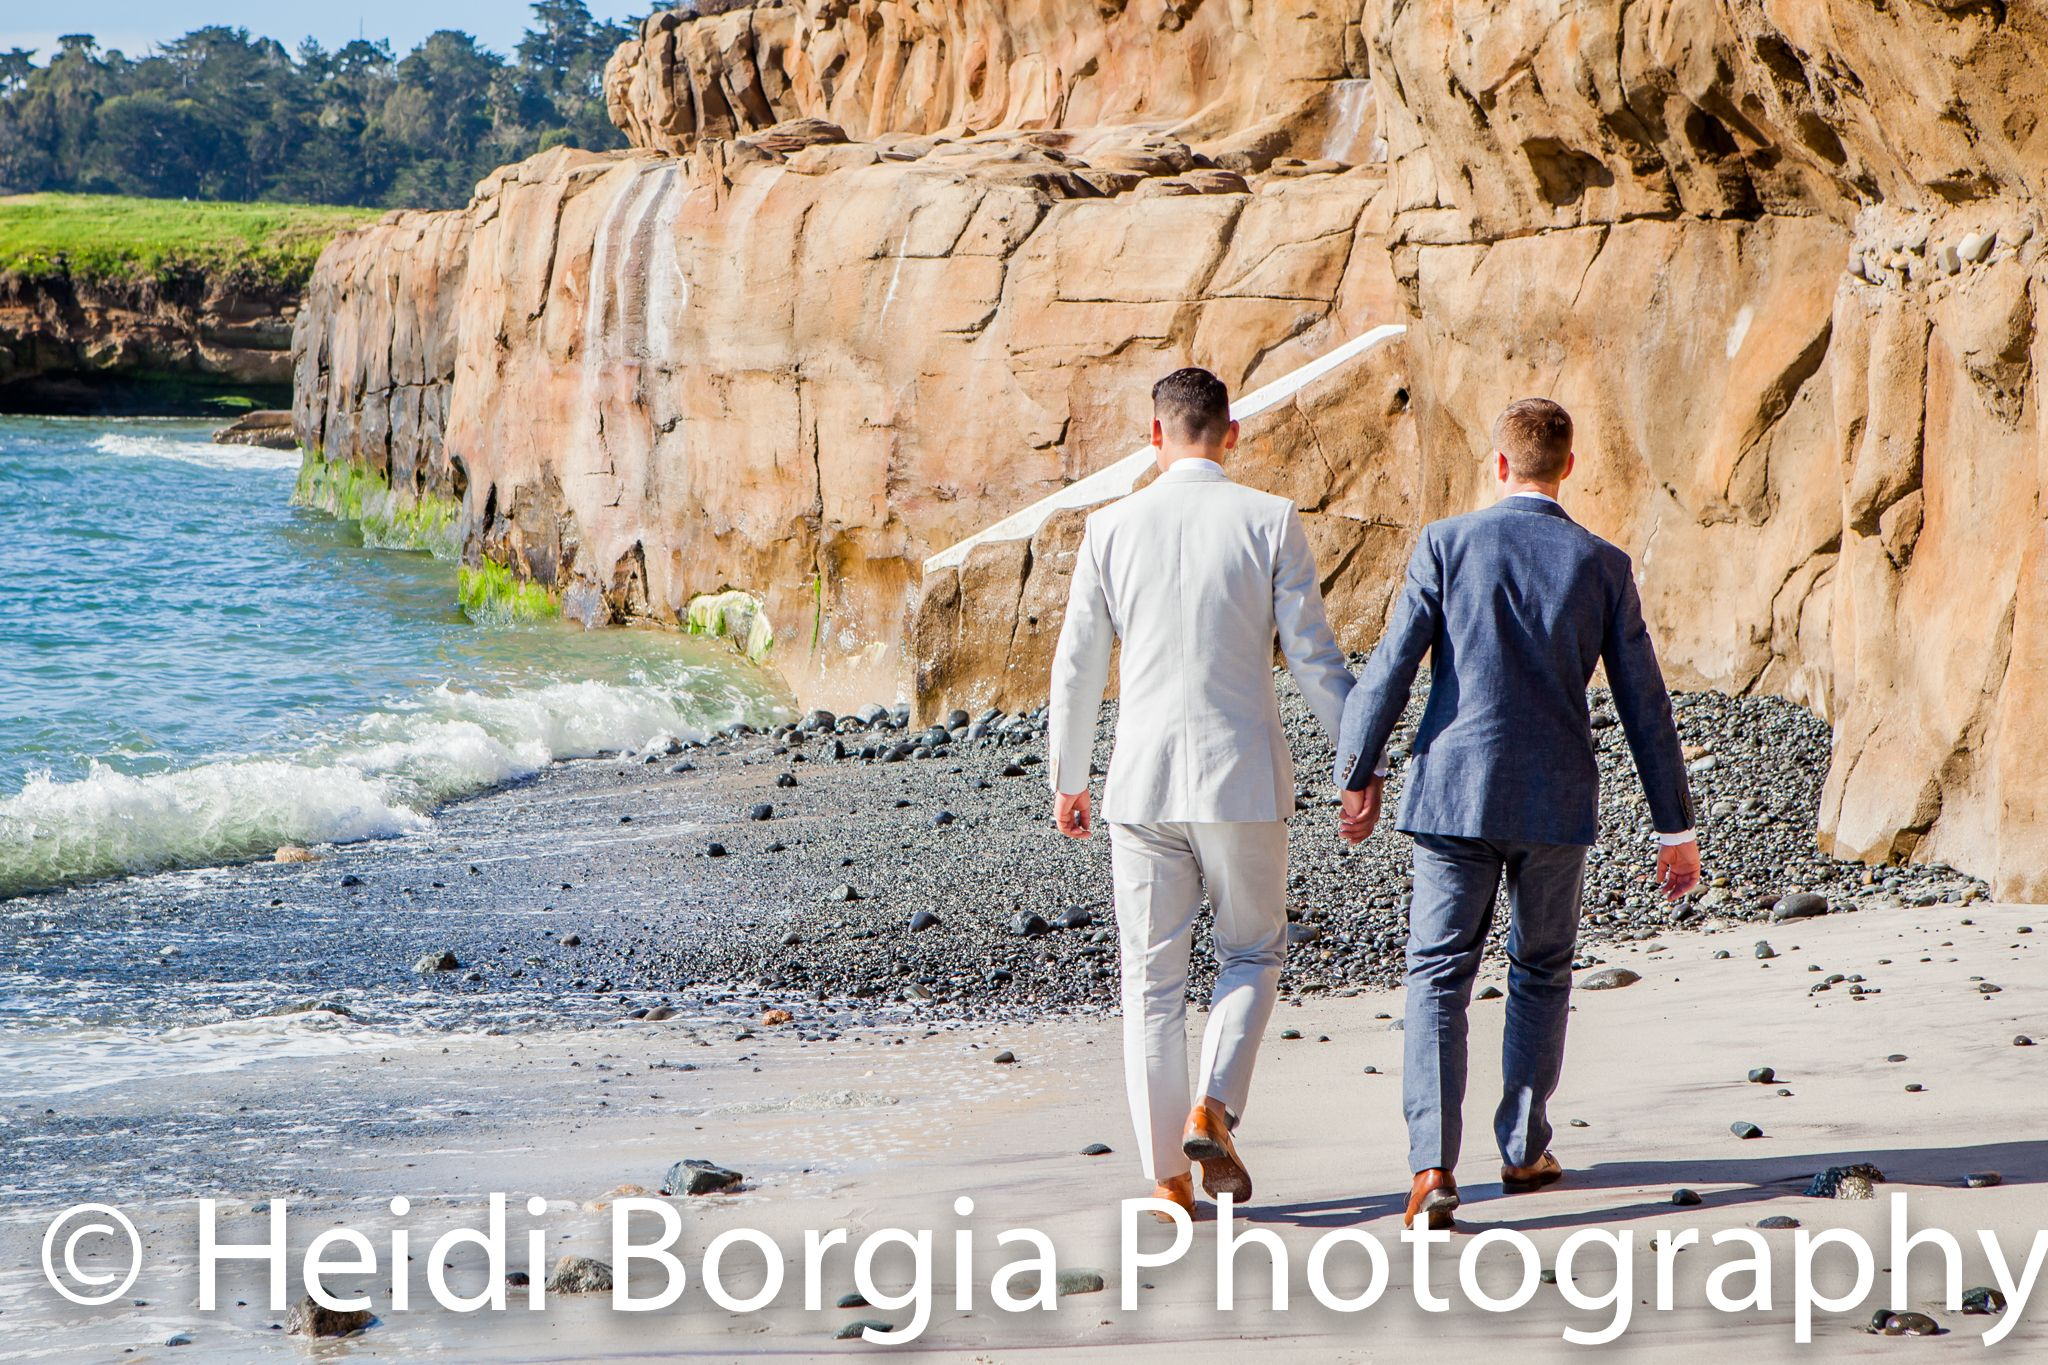 Coastal Photos- Pebble Beach Resort, beach club beach. http://www.heidiborgiaphotography.com/